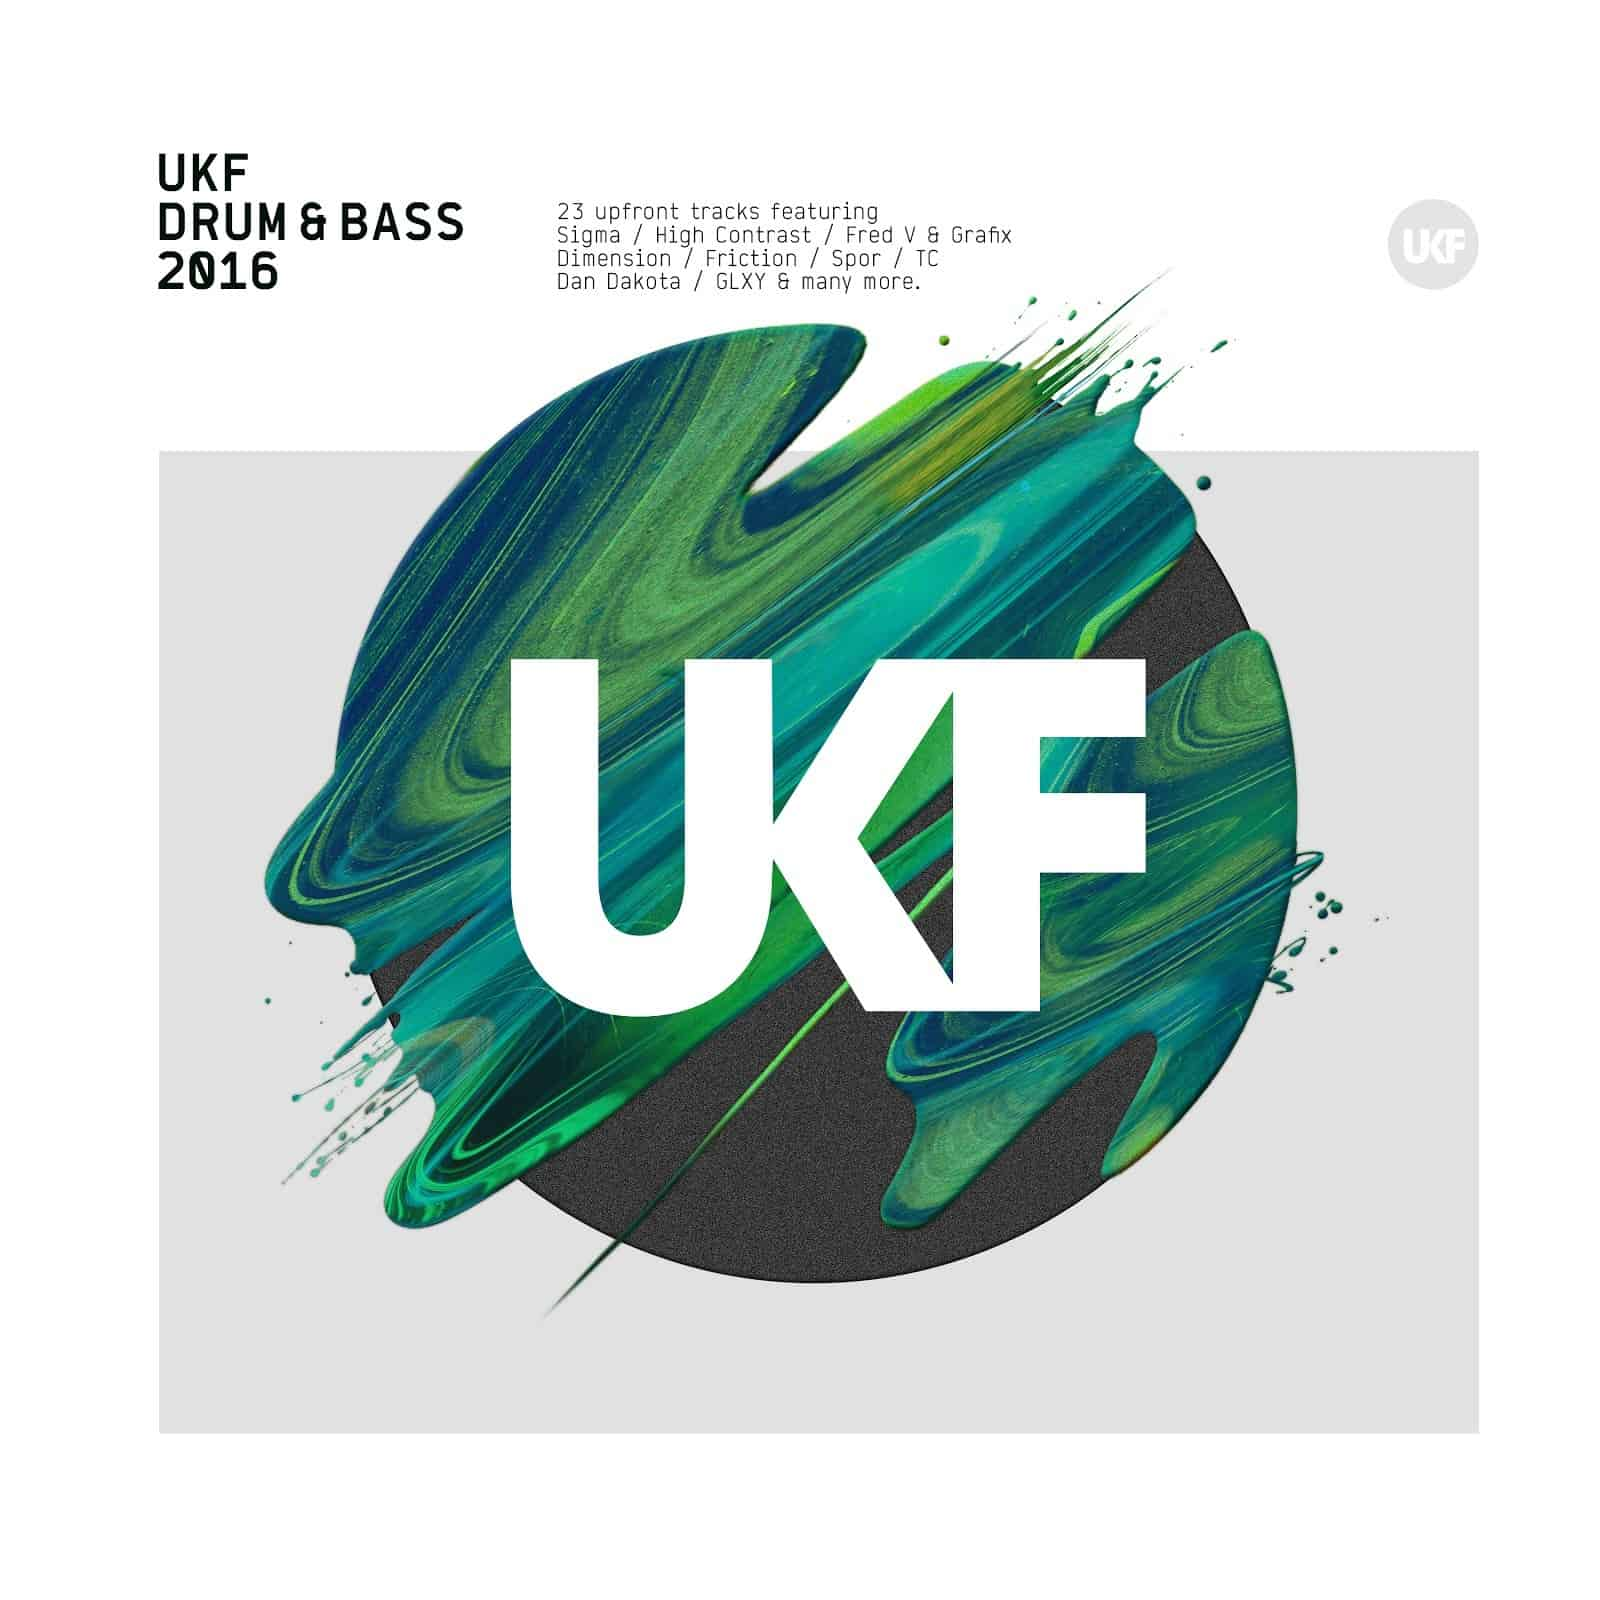 UKF Drum & Bass 2016